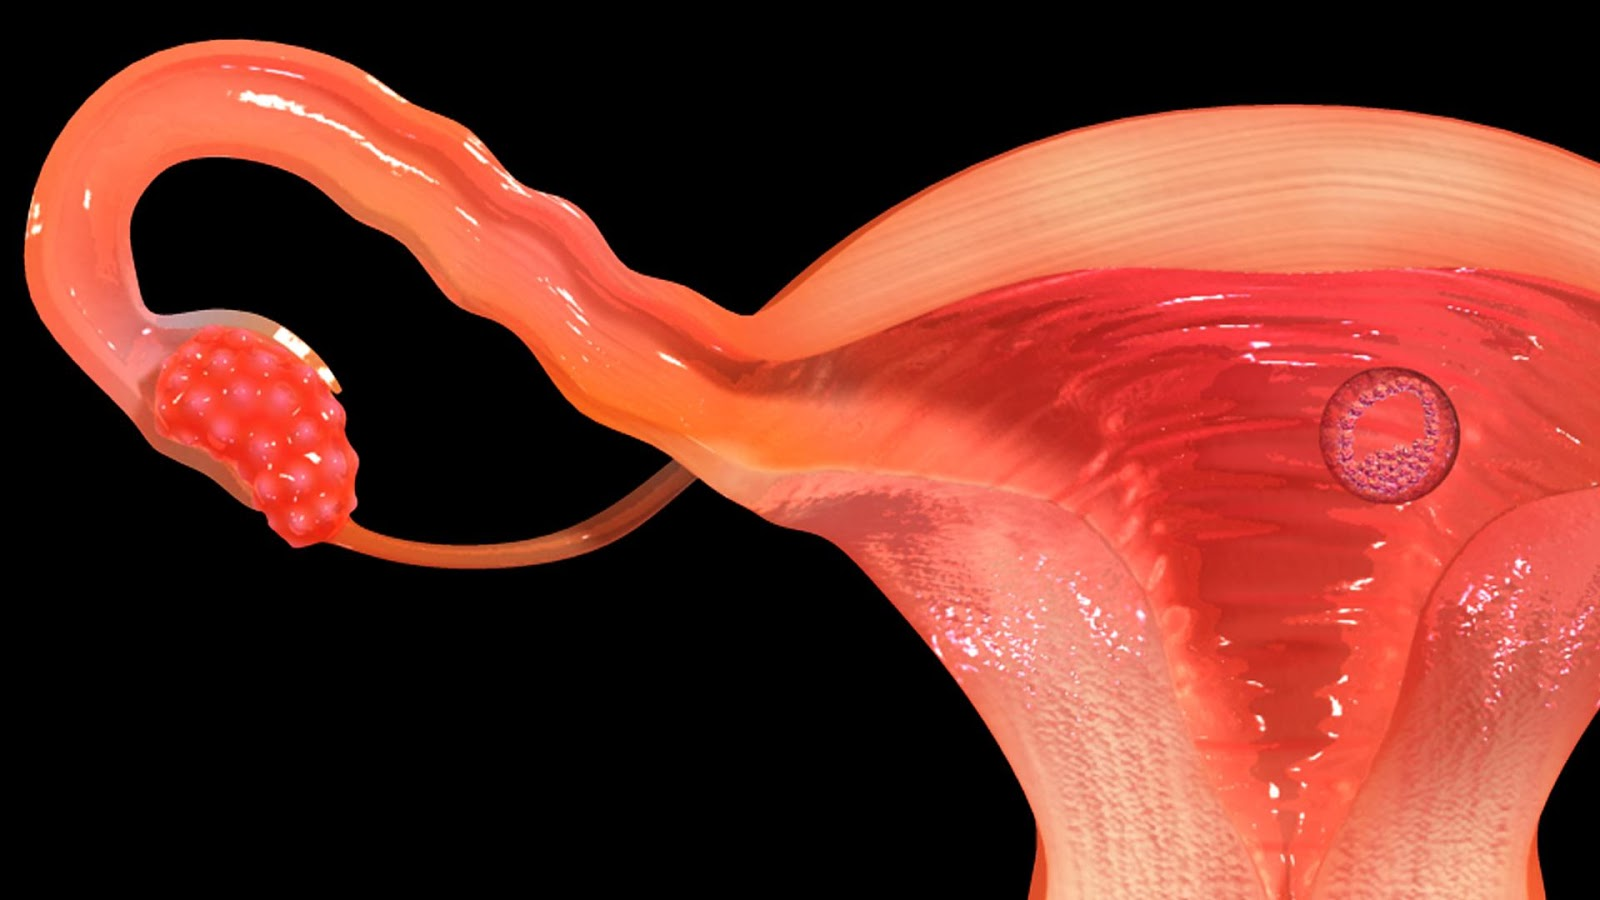 Vr Female Reproductive System 102 Apk Download Android Education